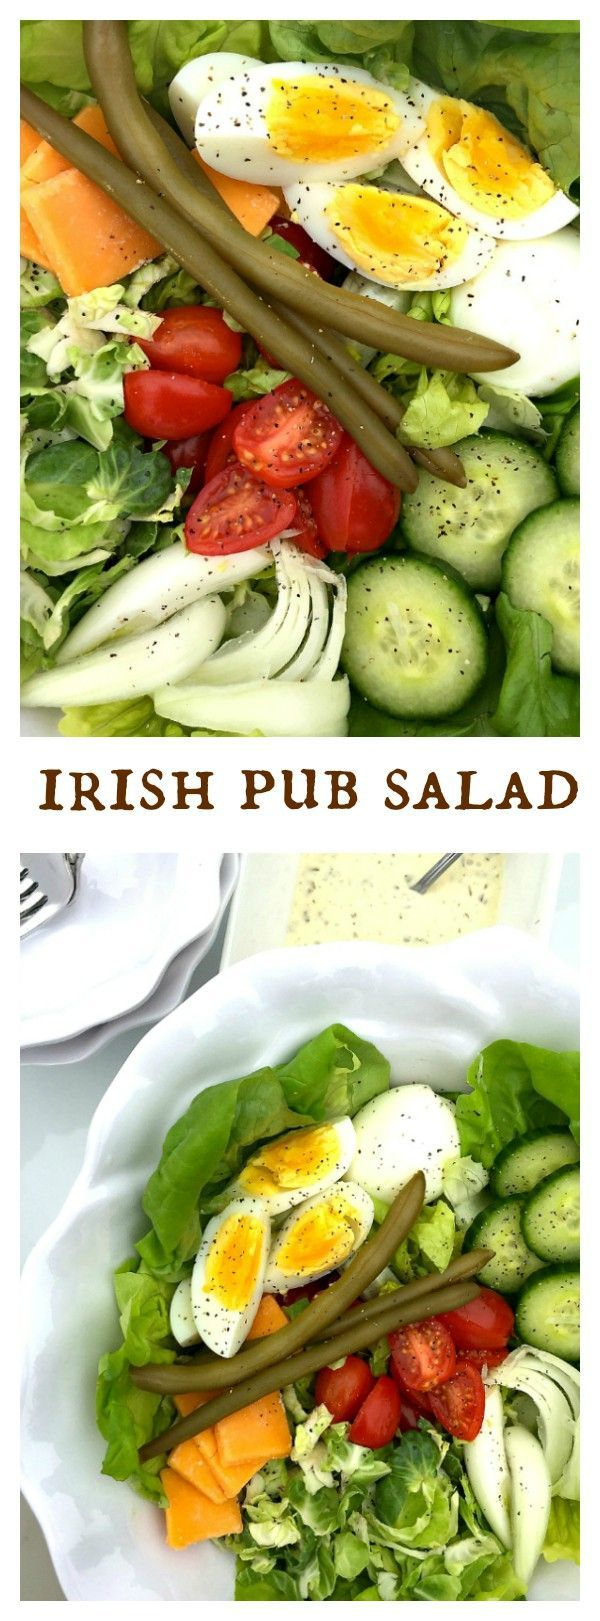 Delicious for St. Patrick's Day or any time of year, an Irish Pub salad is not about Irish potatoes; rather it is all about serving a crunchy, festive salad, with hard cooked eggs and cheese. Serve with a side of tangy Tarragon Dressing. #StPatricksDay #I